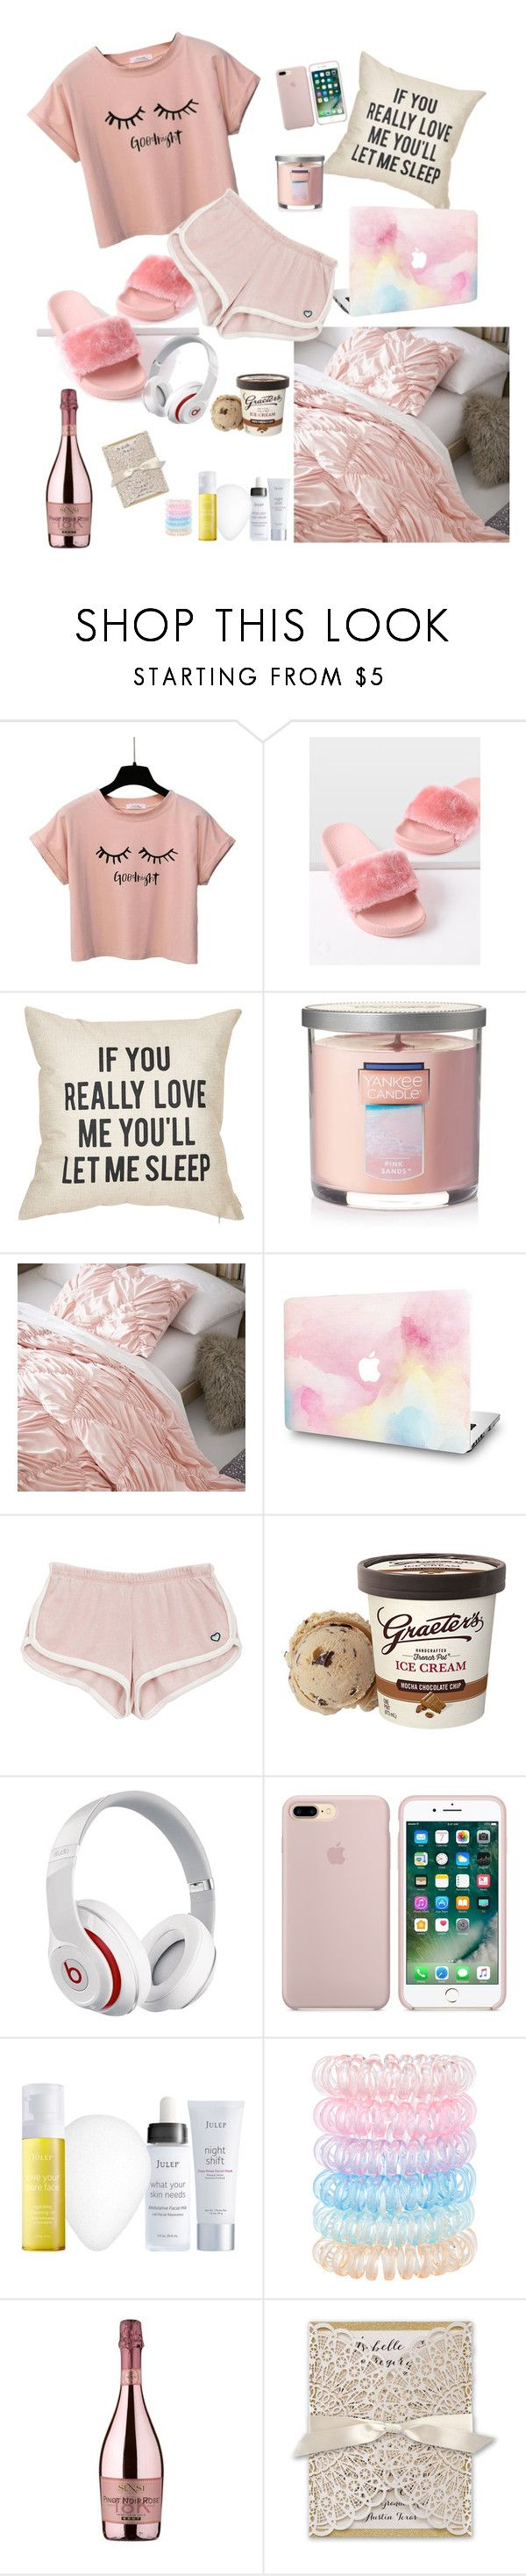 """""""Chill time"""" by jamielee-blackmore ❤ liked on Polyvore featuring Yankee Candle, PBteen, Beats by Dr. Dre, Julep, Accessorize and SENSI"""